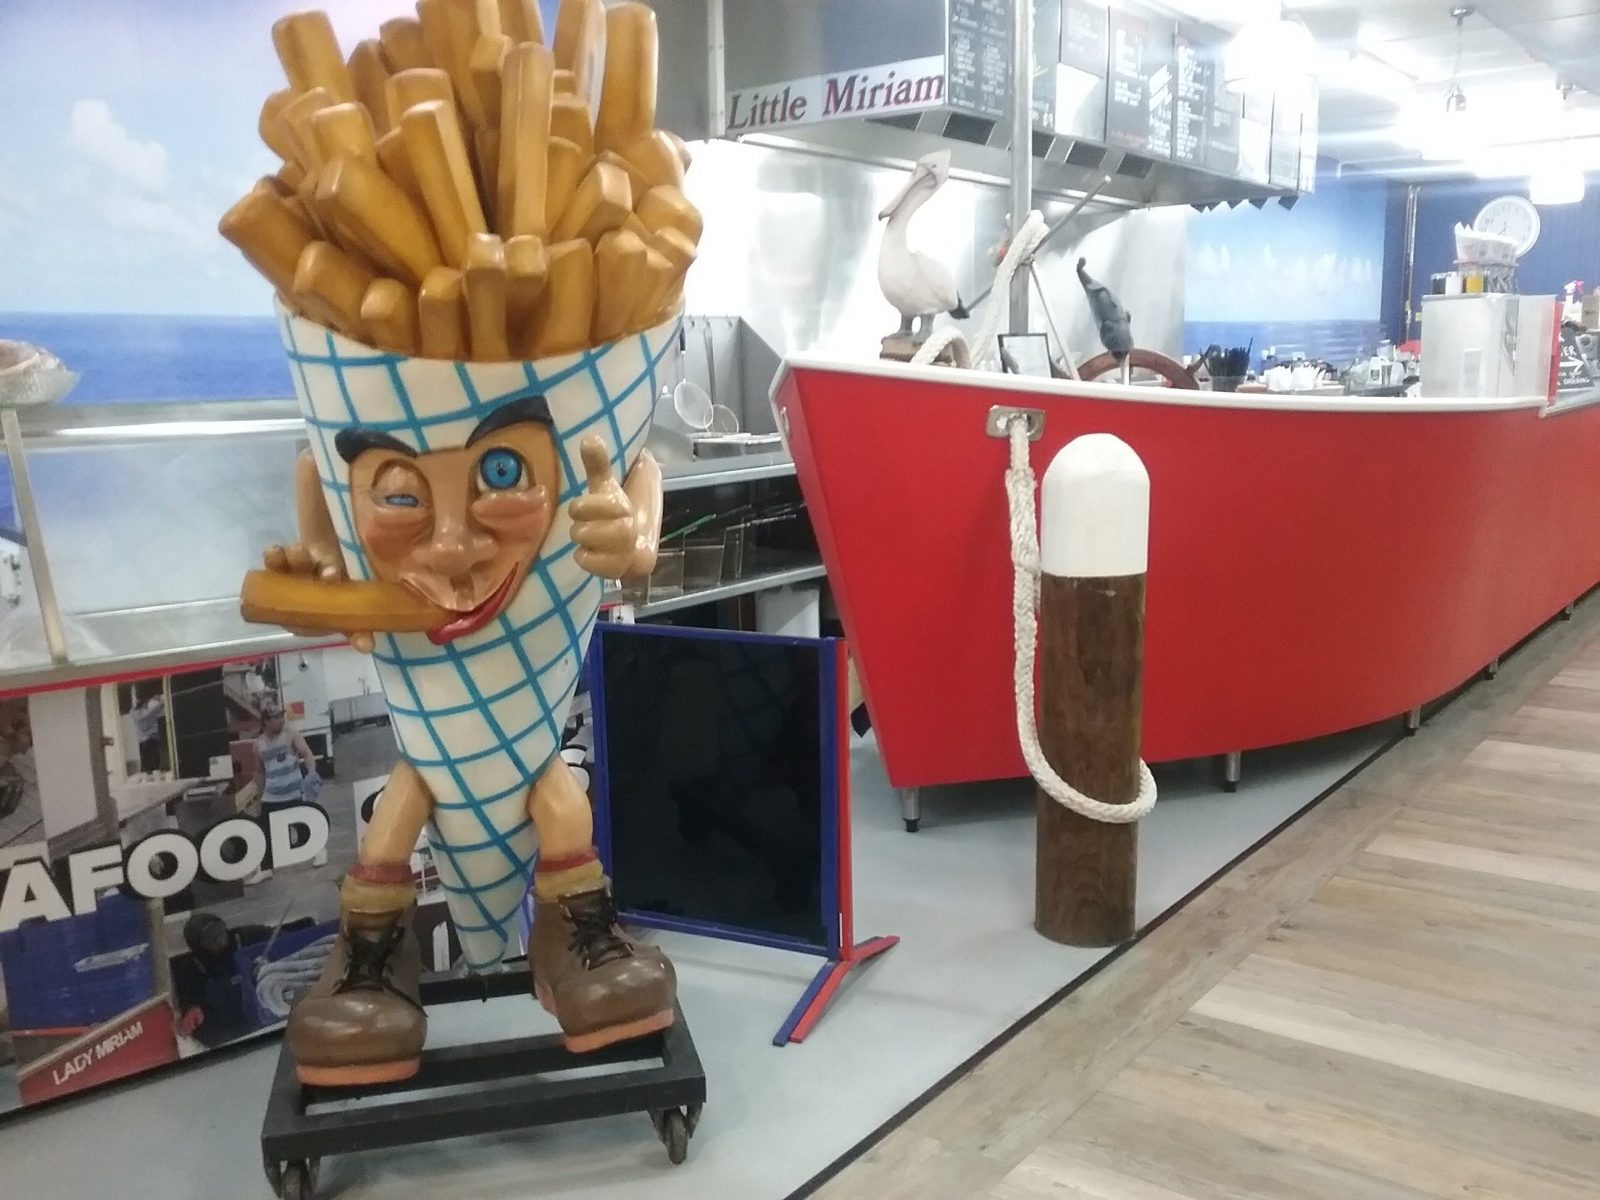 Wild Catch fish and chips mascot, Mr Chips